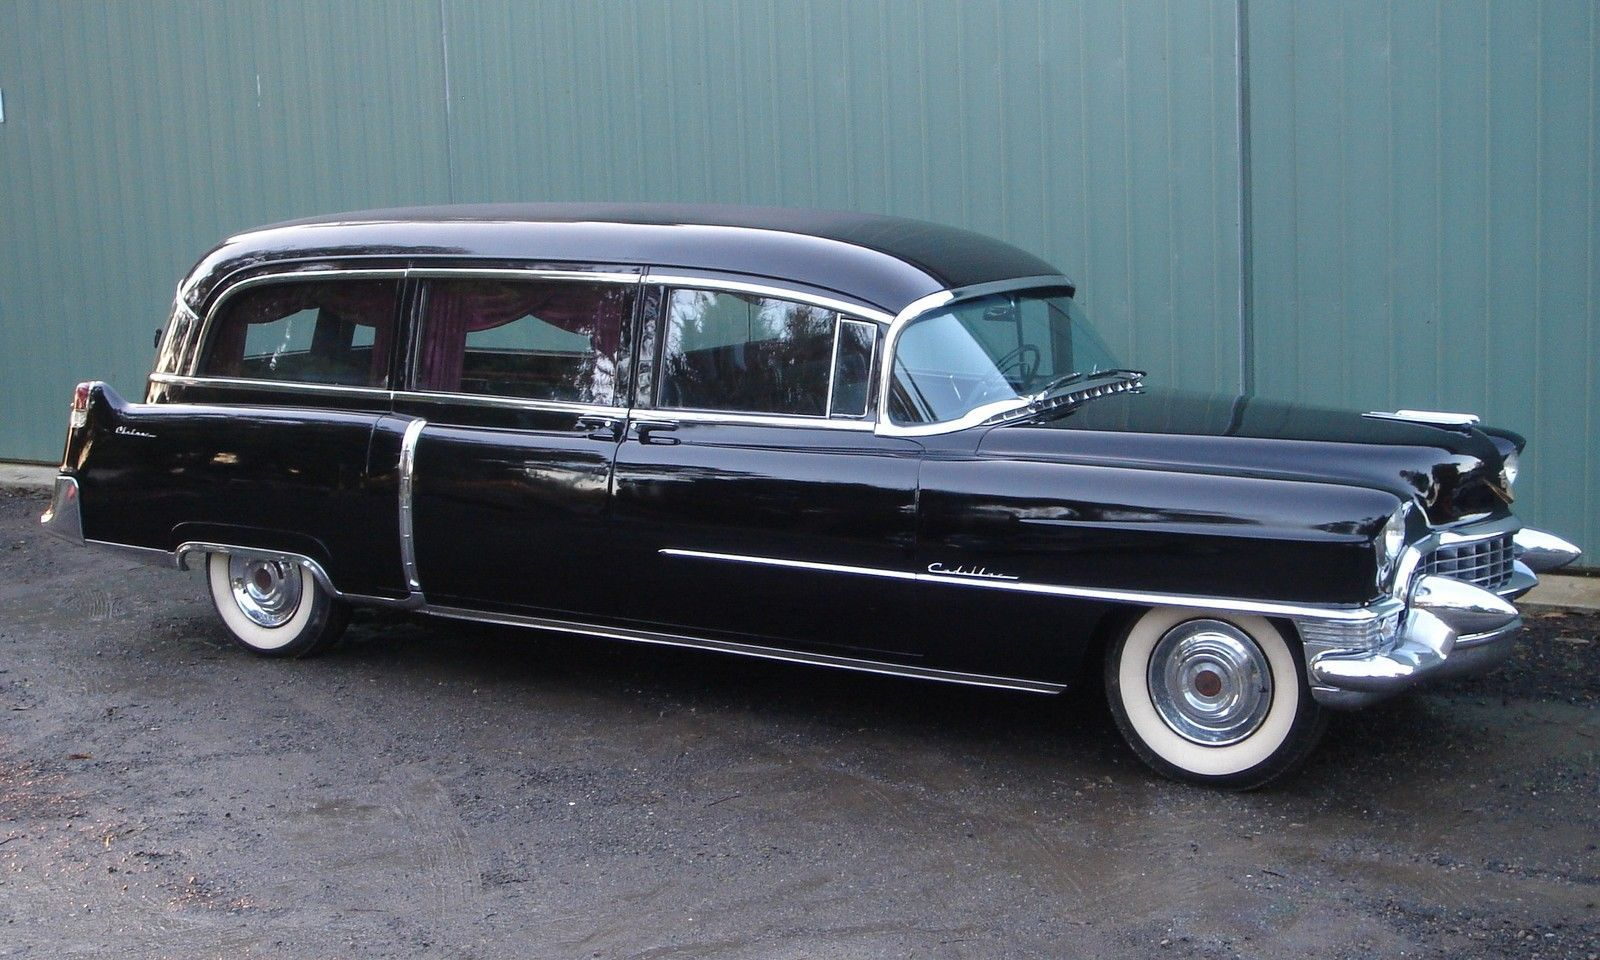 1955 cadillac meteor hearse miles from new very nice car in amazing shape